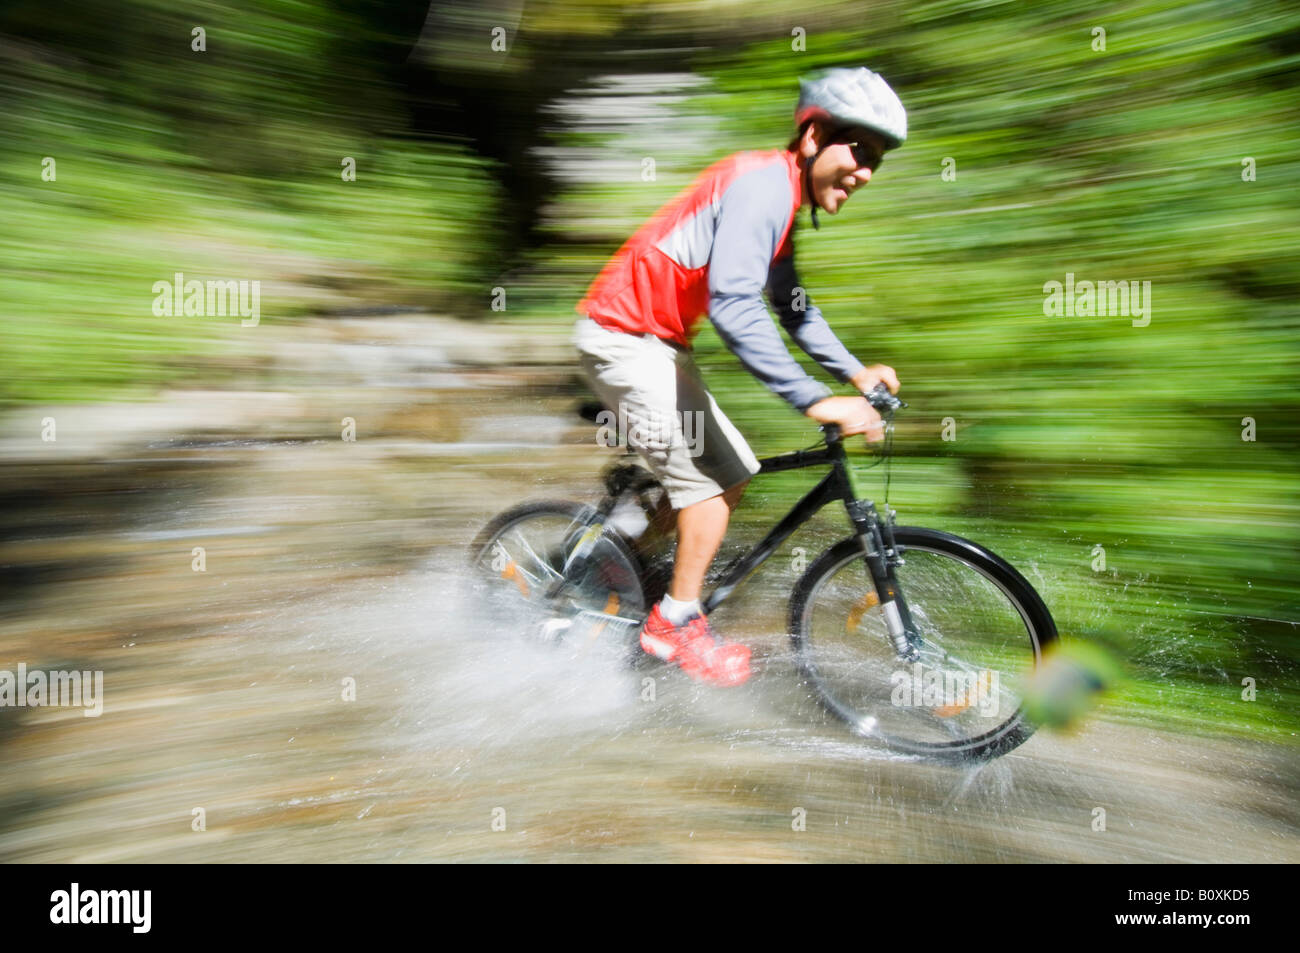 Mountaibiker on the way - Stock Image